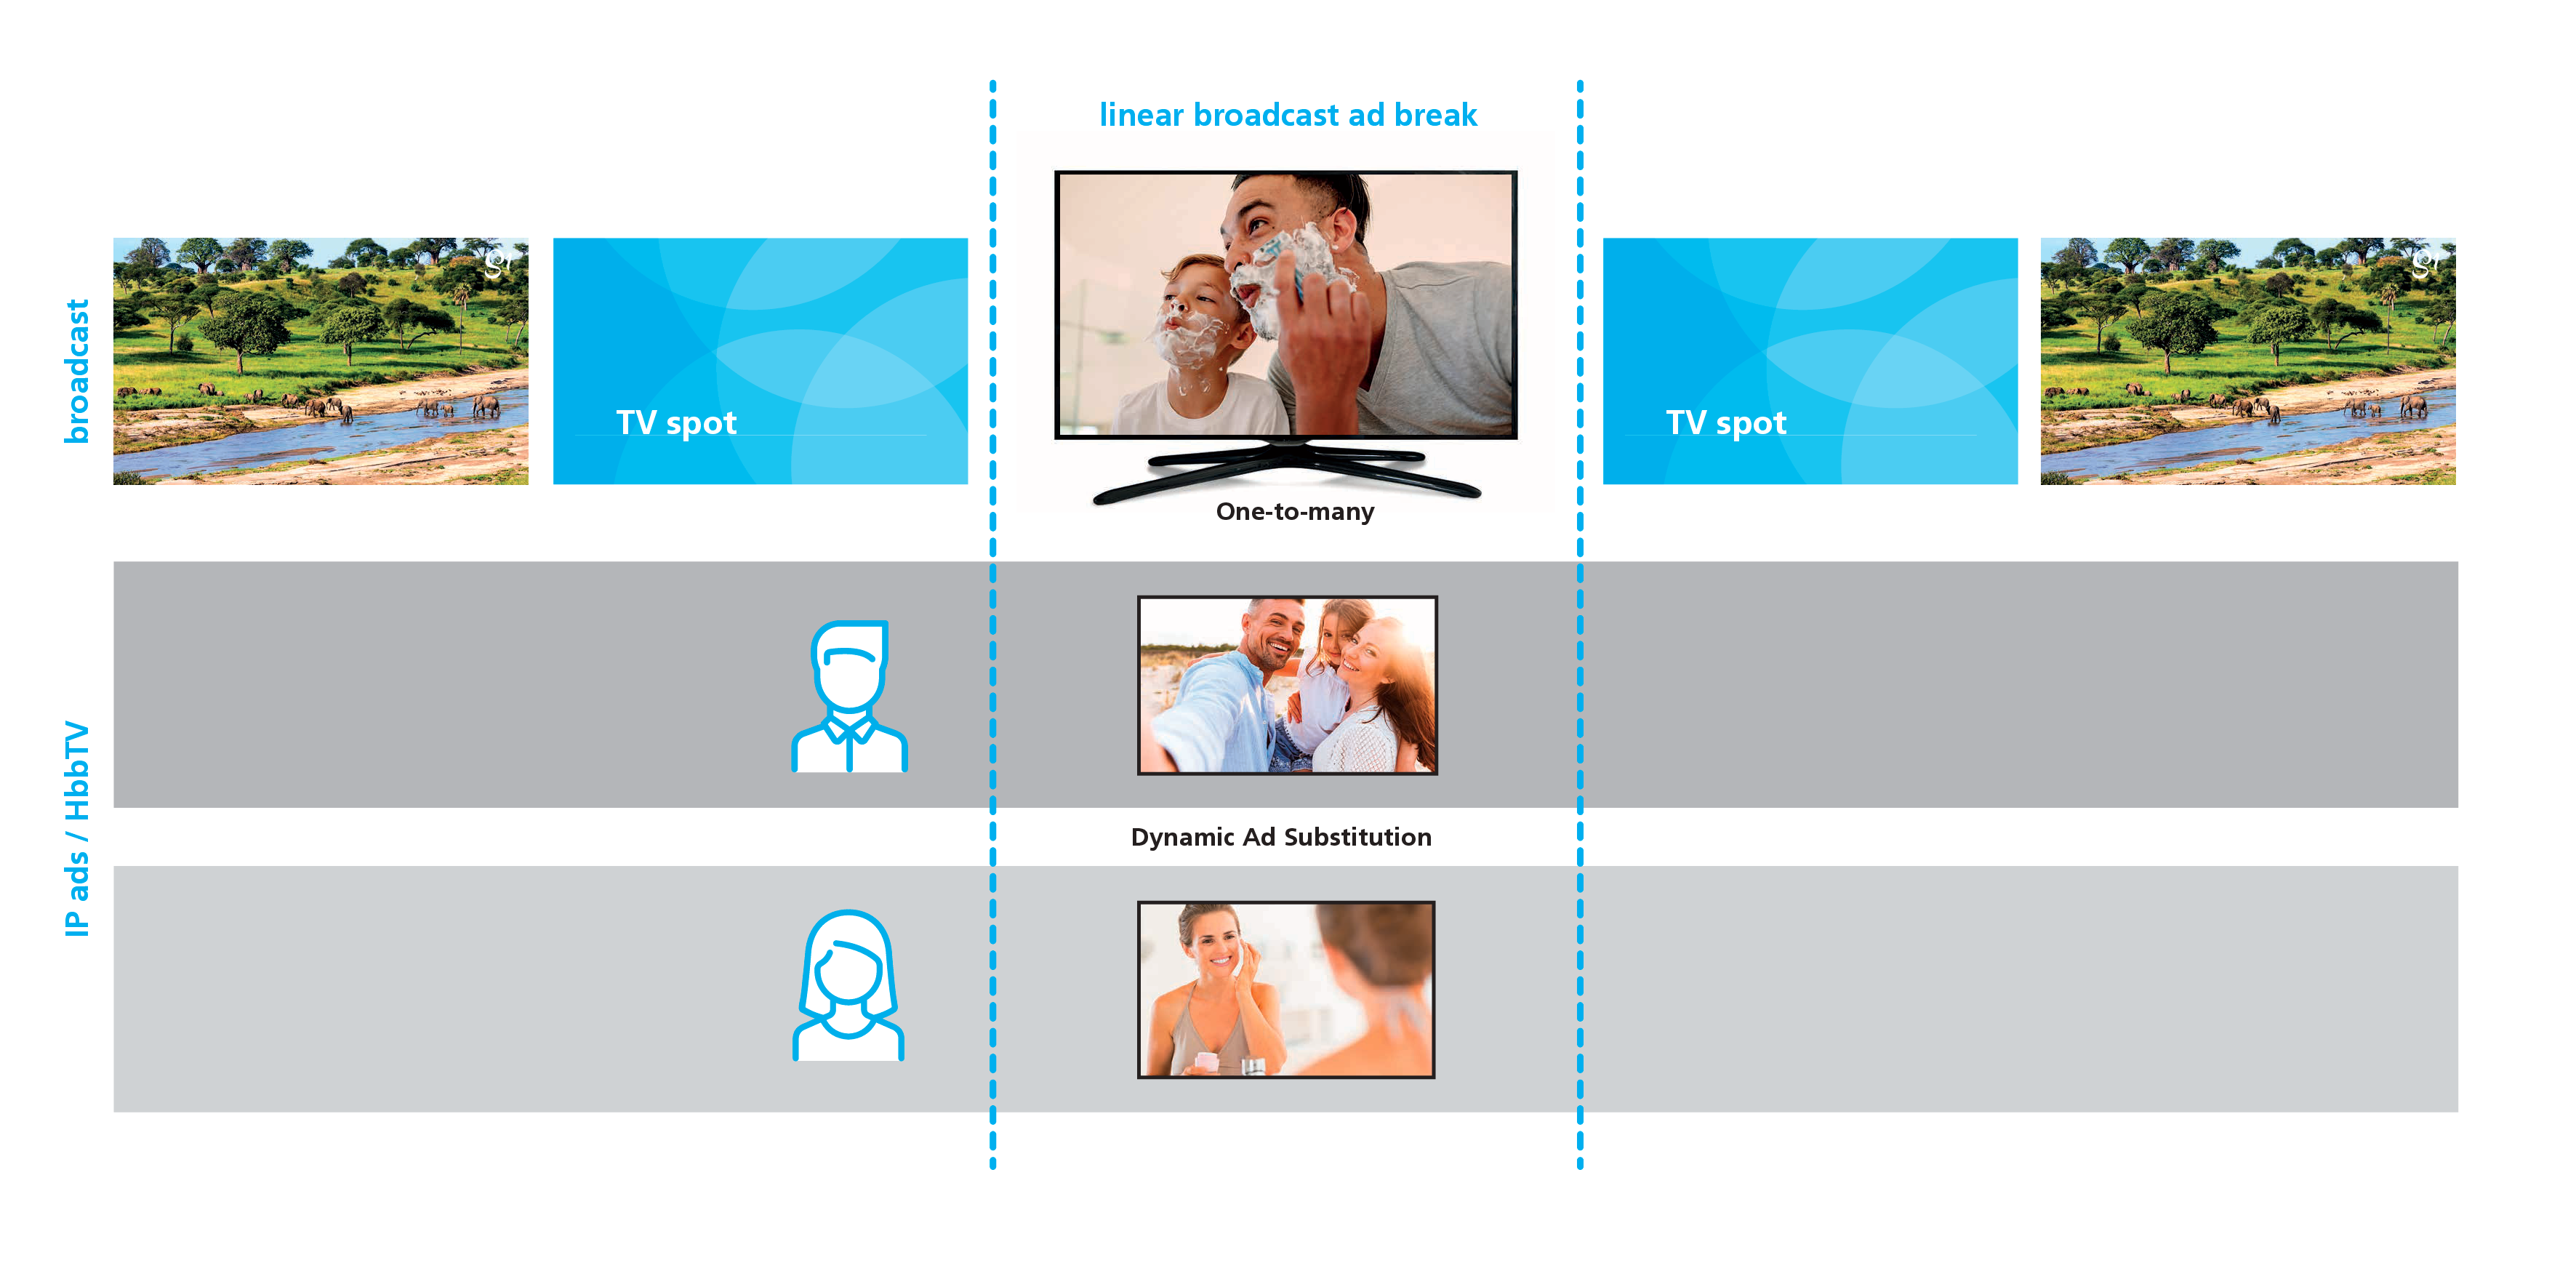 Dynamic Ad Substitution (DAS) powered by HbbTV 2.0